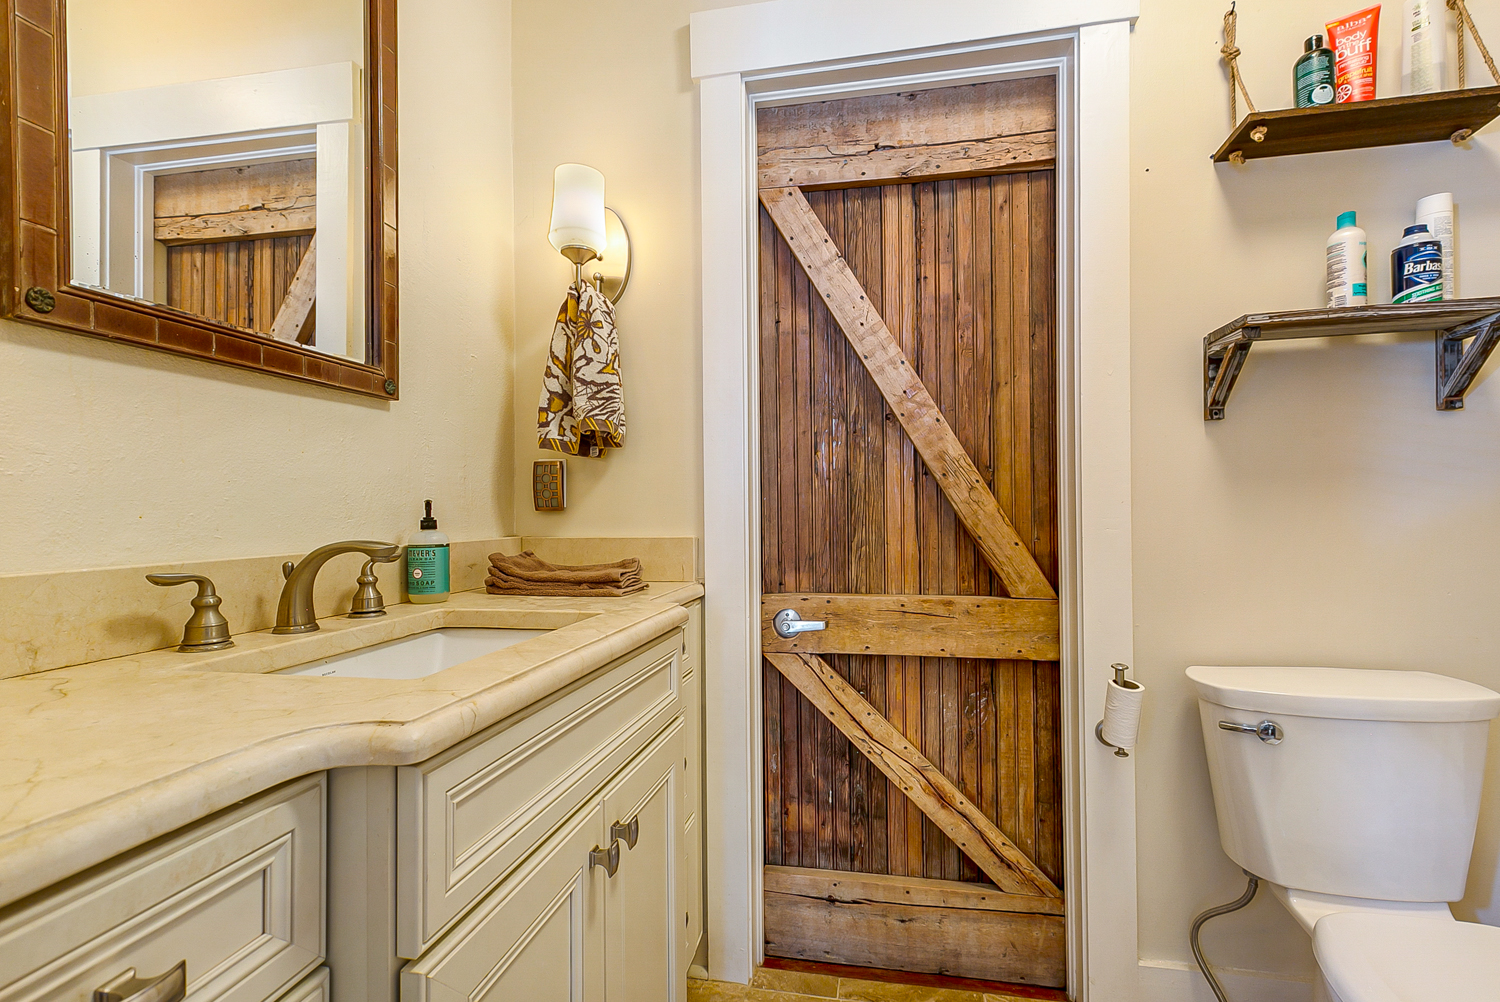 French Quarter, Condo, 1 beds, 2.0 baths, $2400 per month New Orleans Rental - devie image_10